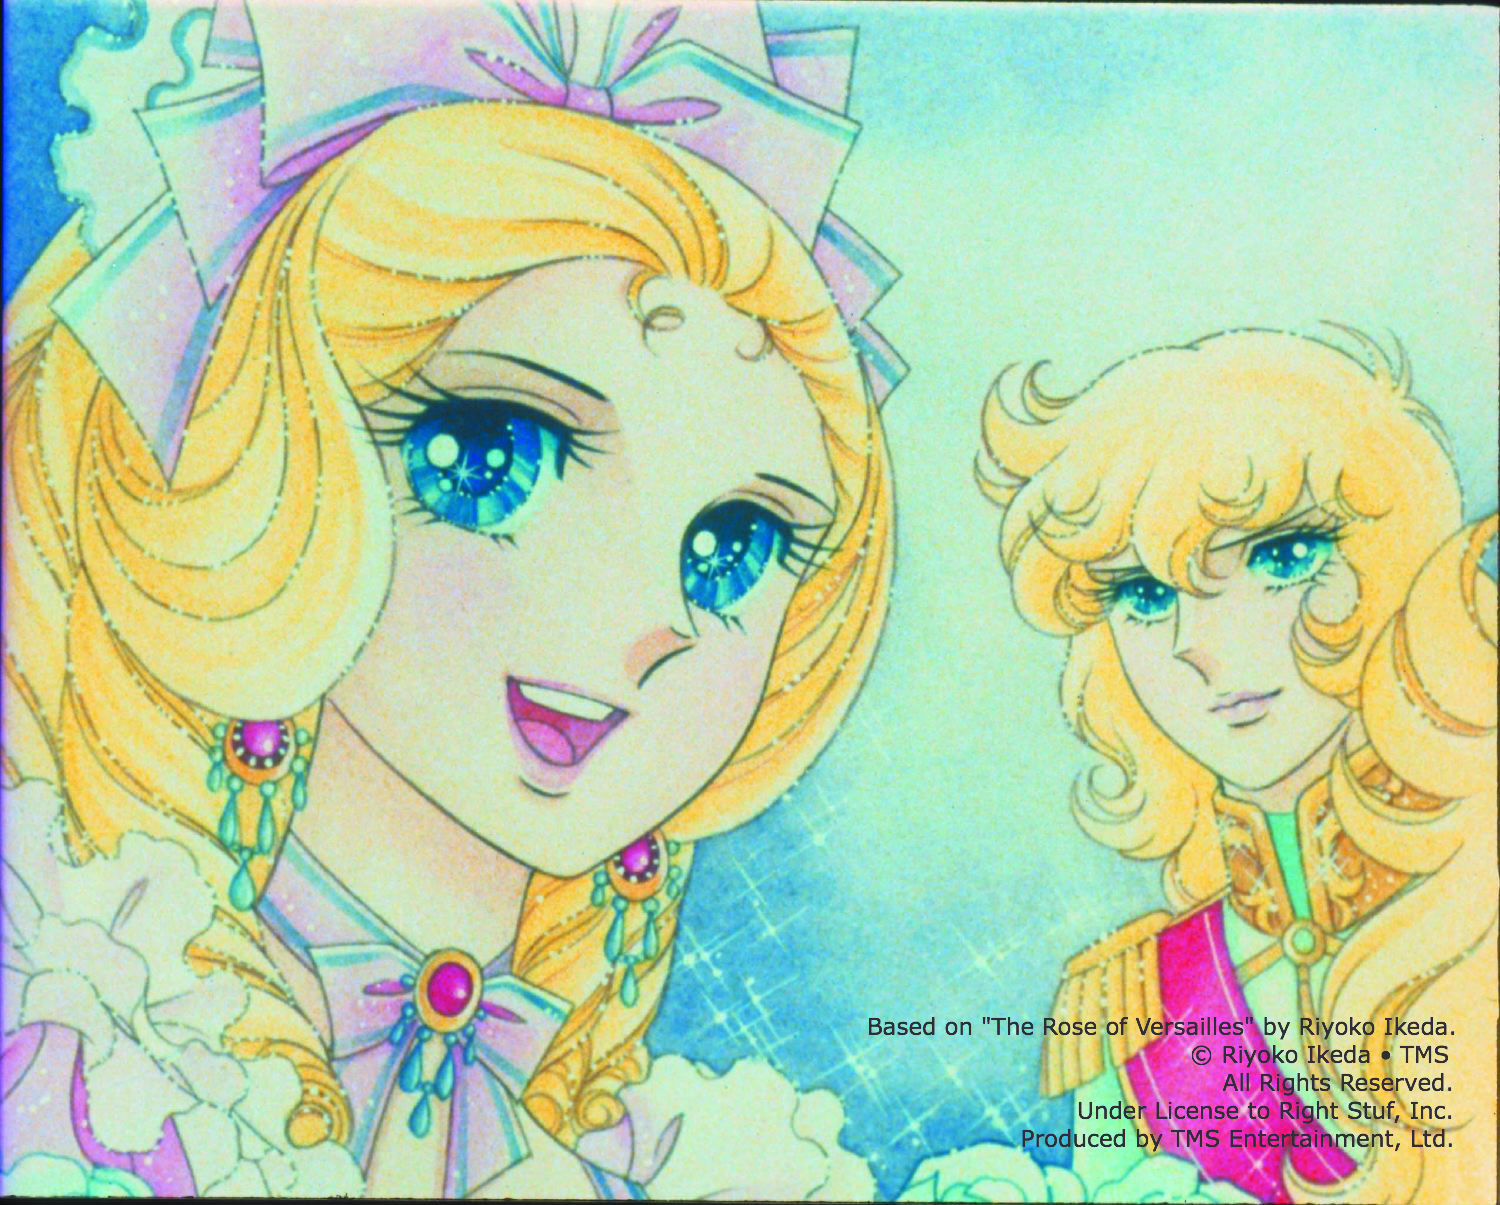 The Rose of Versailles Episode 1: Oscar! The Destiny of the Rose